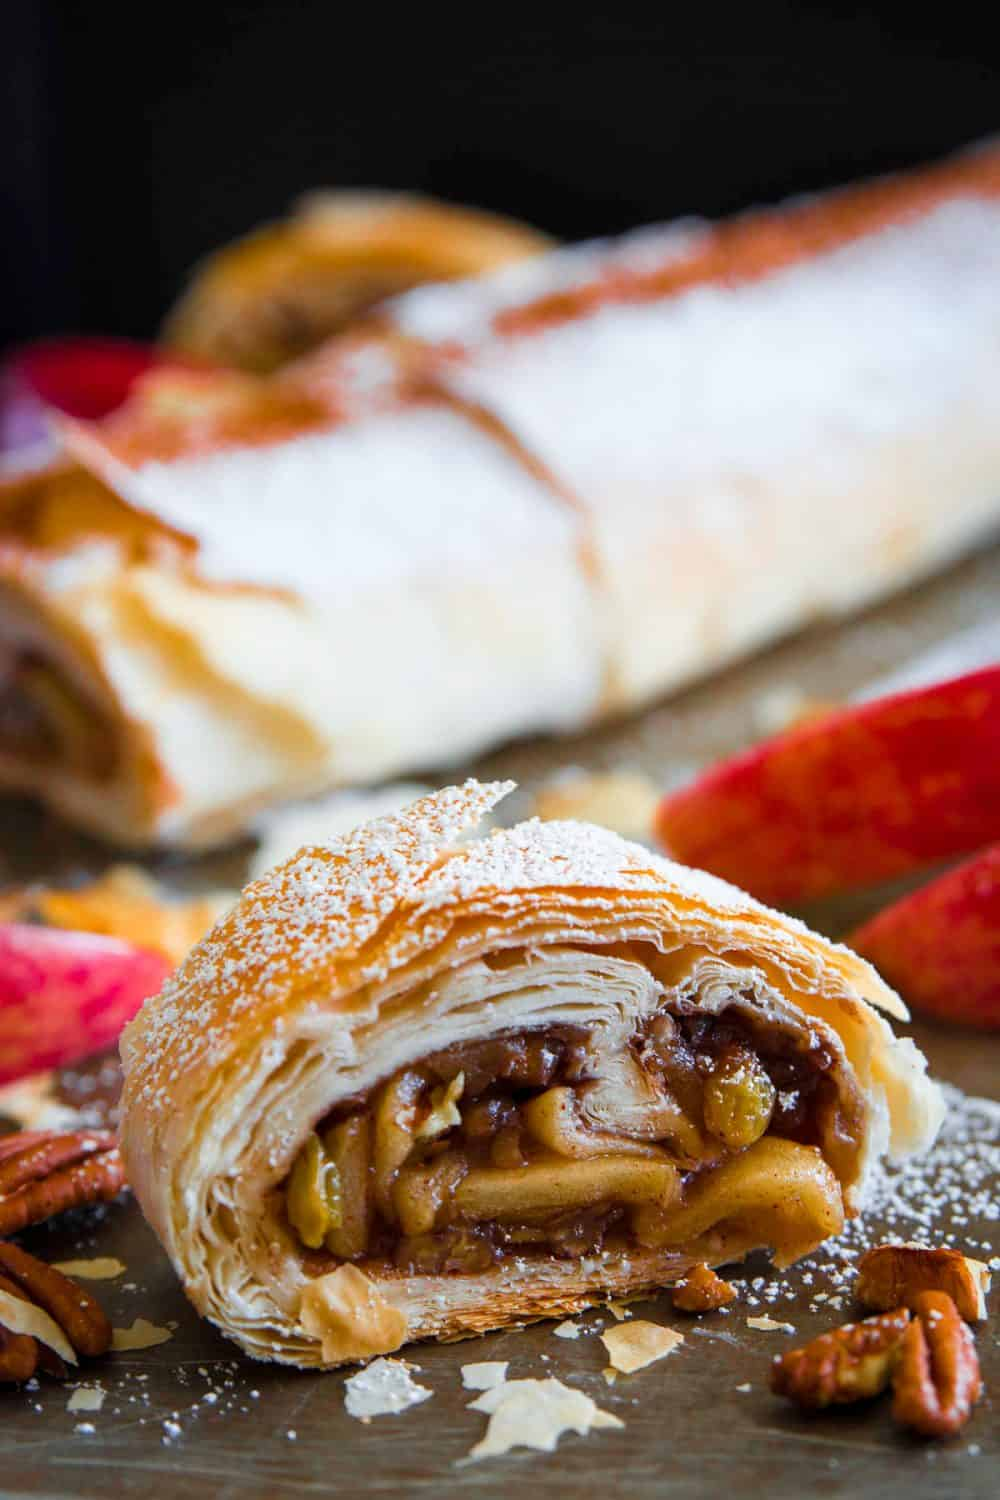 Apple strudel on a flat brown surface with a close up shot of a slice showing flaky crust and layers of cooked apples and pecans with a dusting of powdered sugar on top